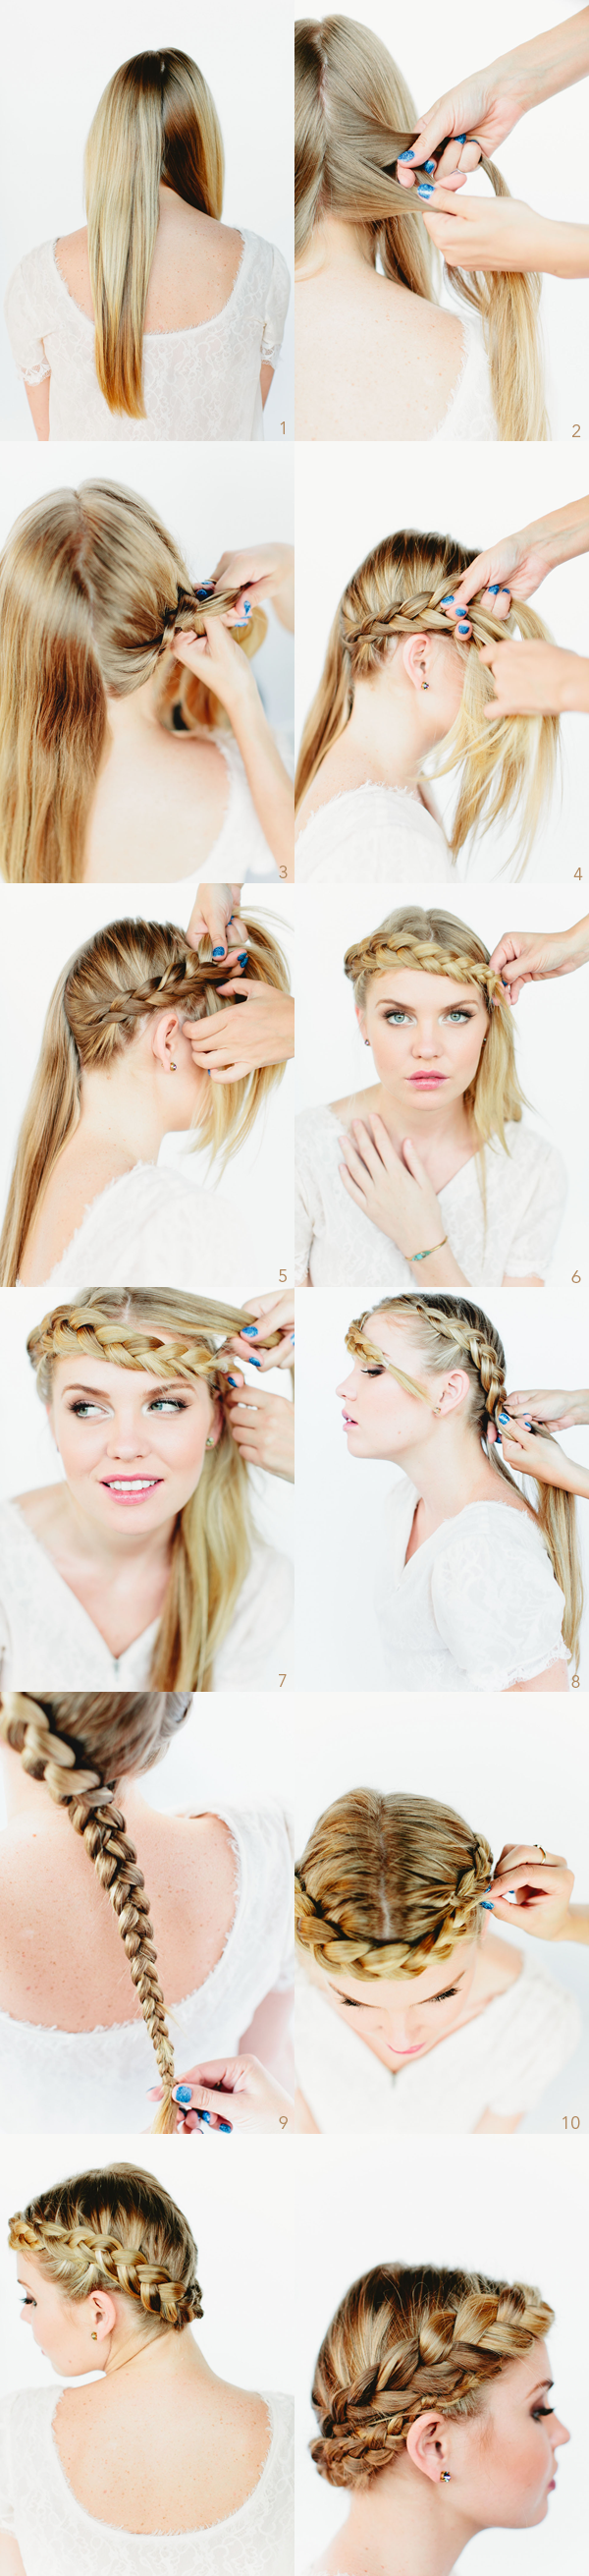 Pleasing How To Do A Braided Crown Updo Braids Hairstyle Inspiration Daily Dogsangcom